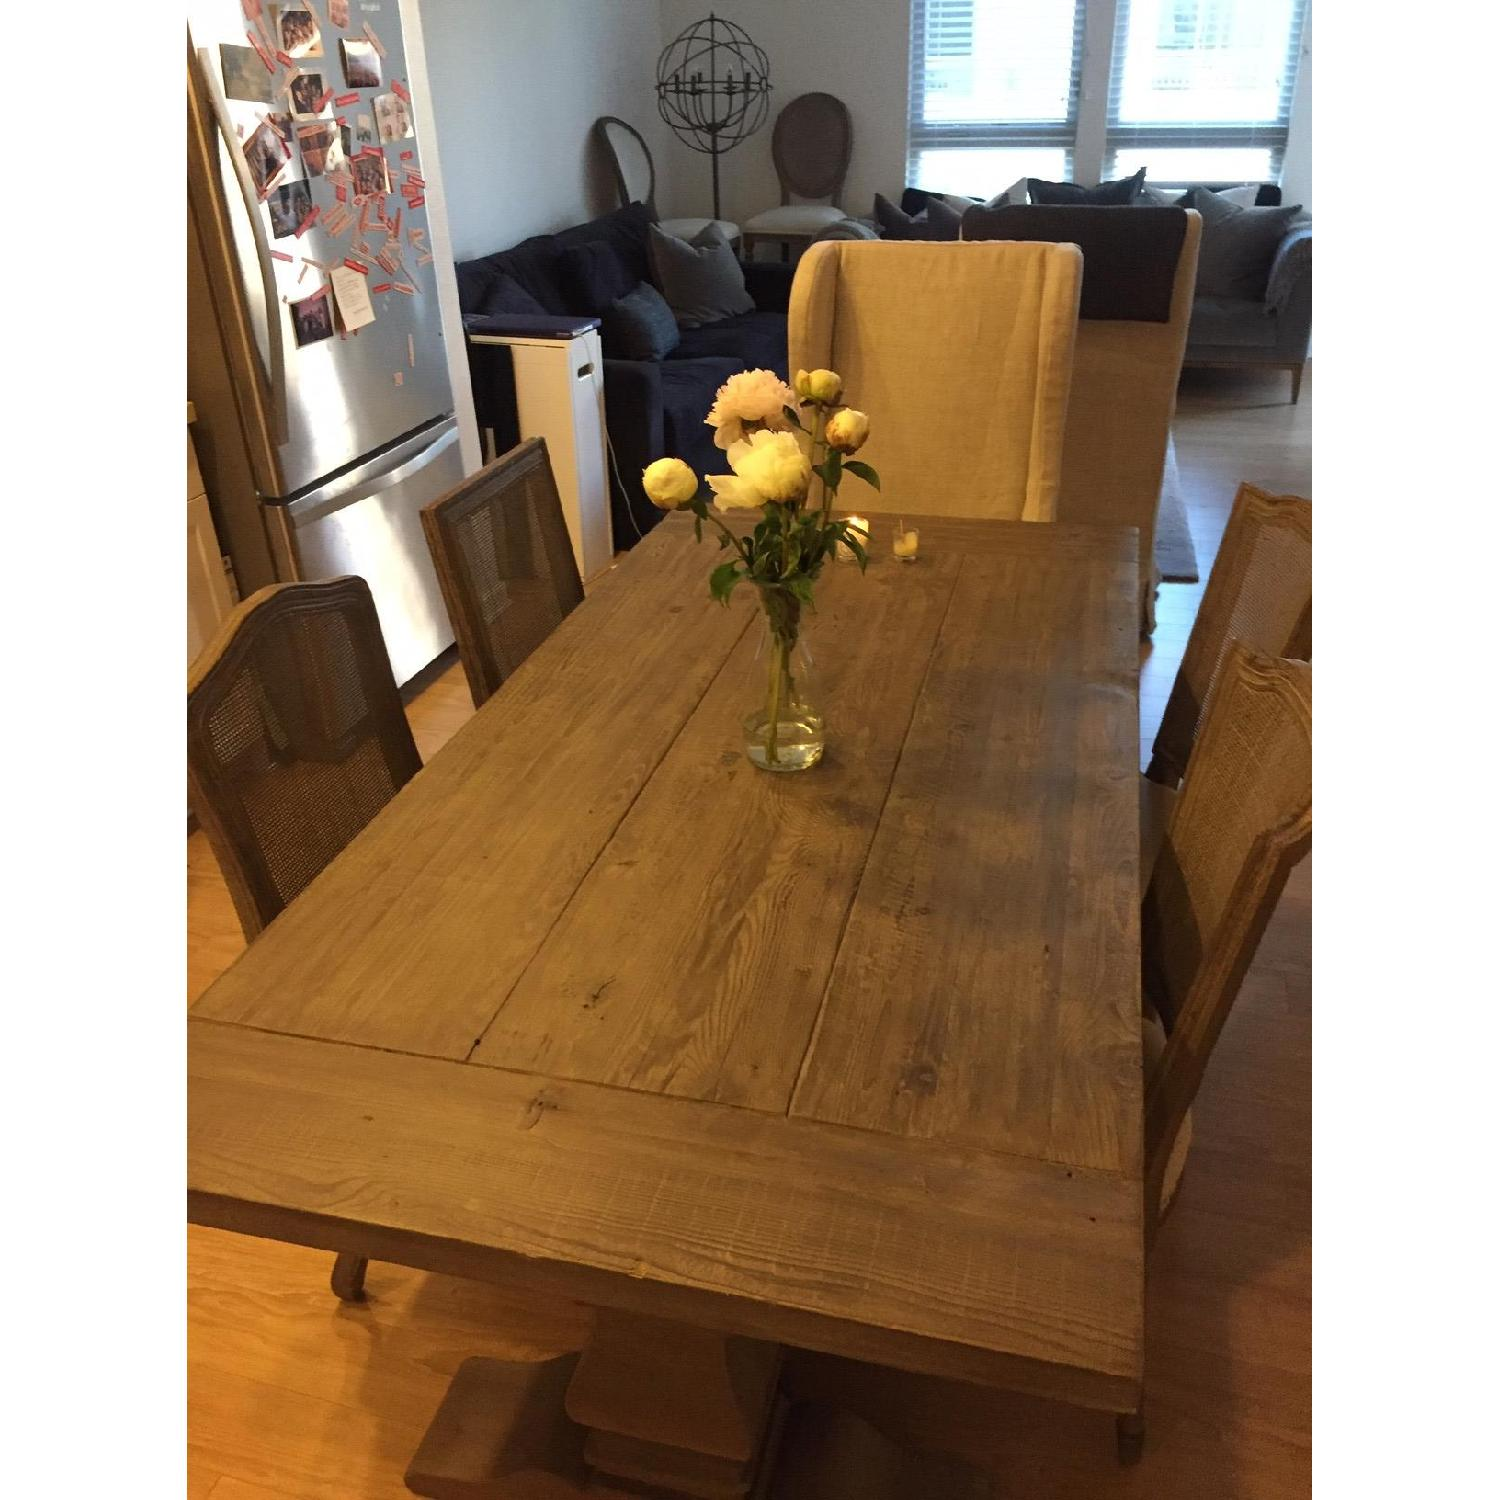 Restoration Hardware Salvaged Wood Dining Table w/ 4 Chairs - image-0